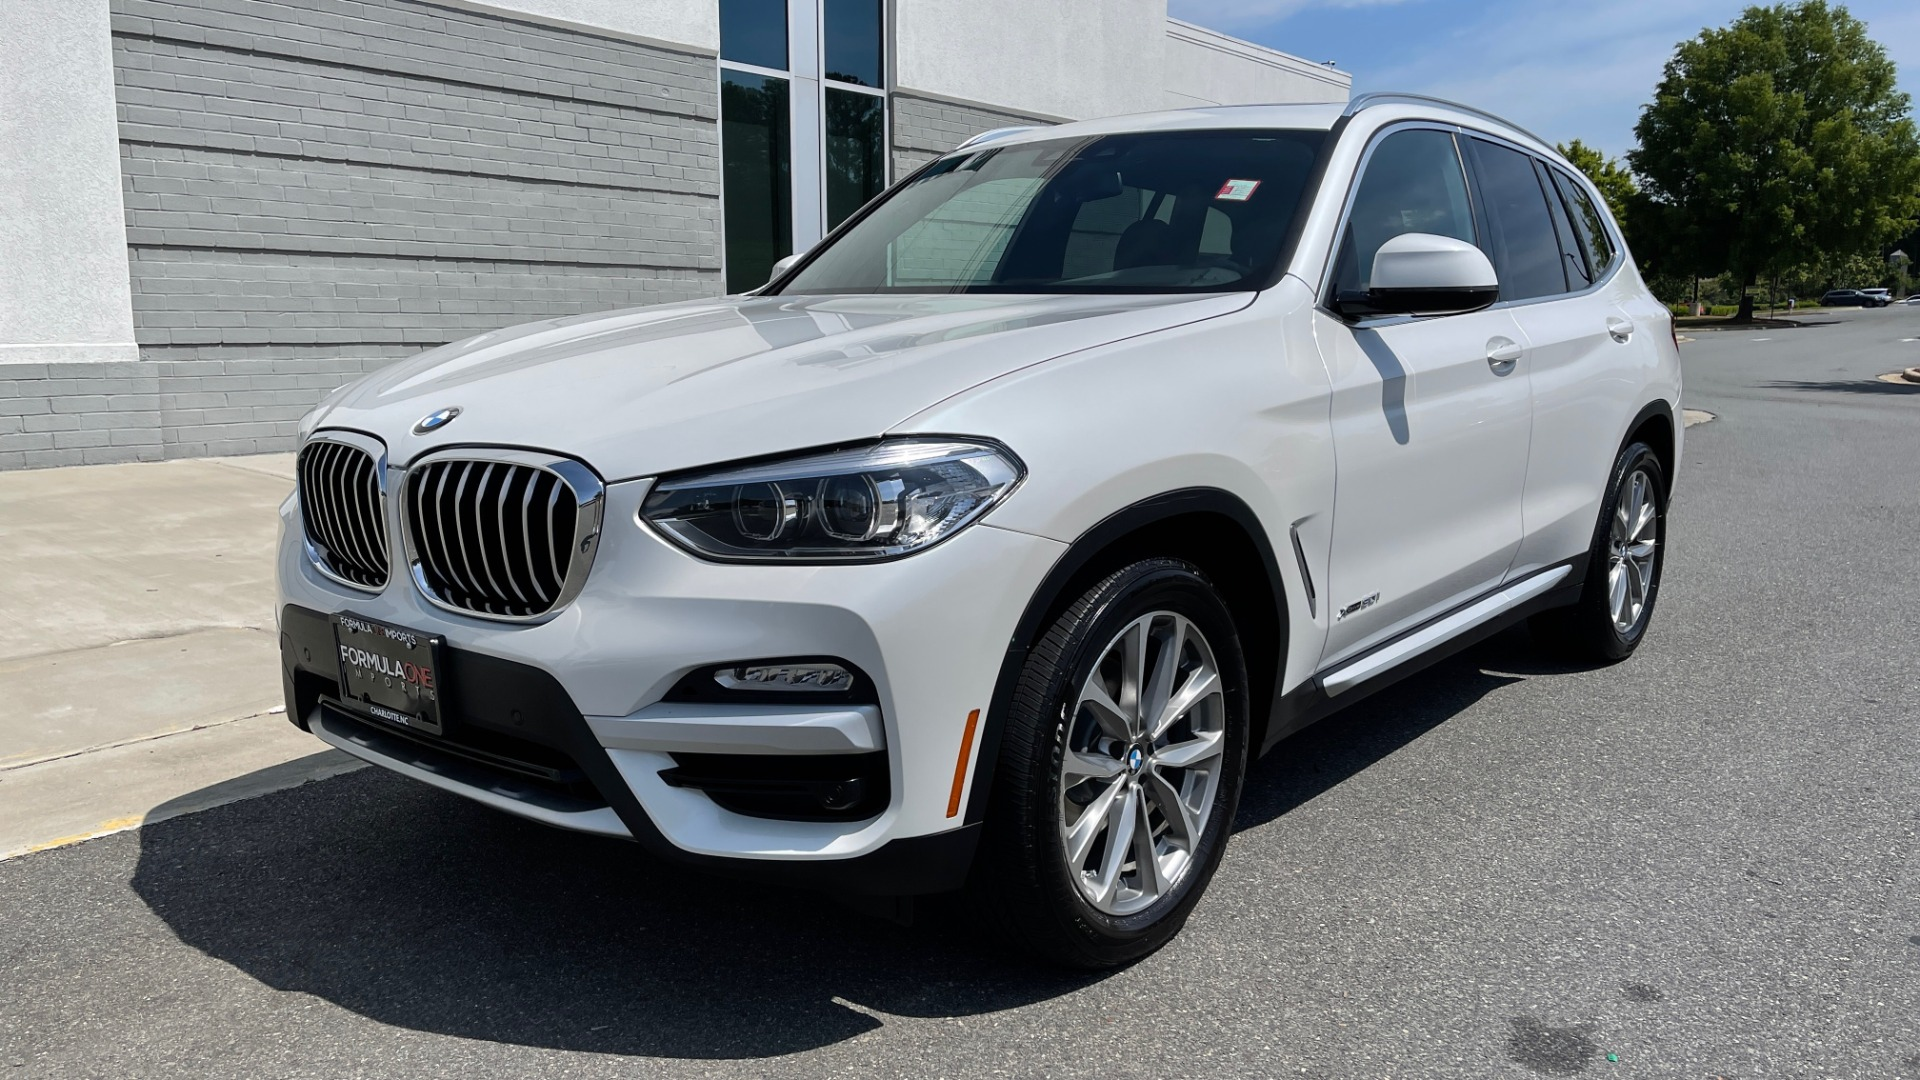 Used 2018 BMW X3 XDRIVE30I PREMIUM / NAV / DRVR ASST / CONV PKG / SUNROOF / REARVIEW for sale $32,695 at Formula Imports in Charlotte NC 28227 4